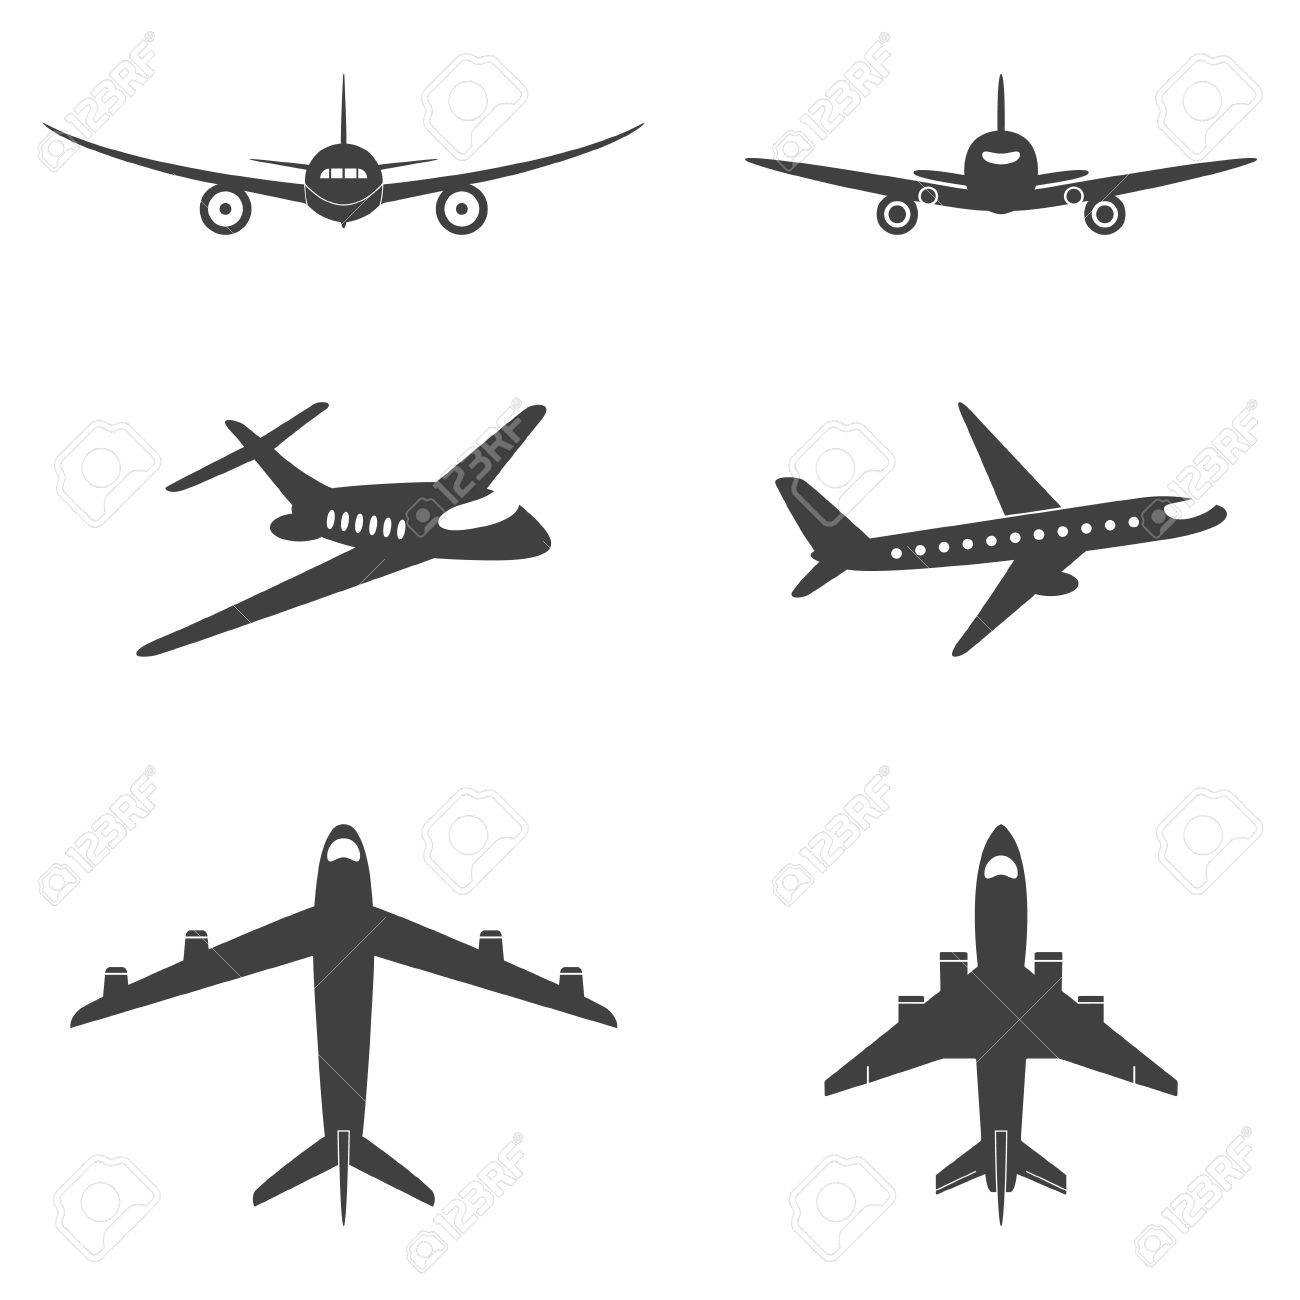 Vector isolated plane icons set. Vector EPS8 illustration. - 45322055